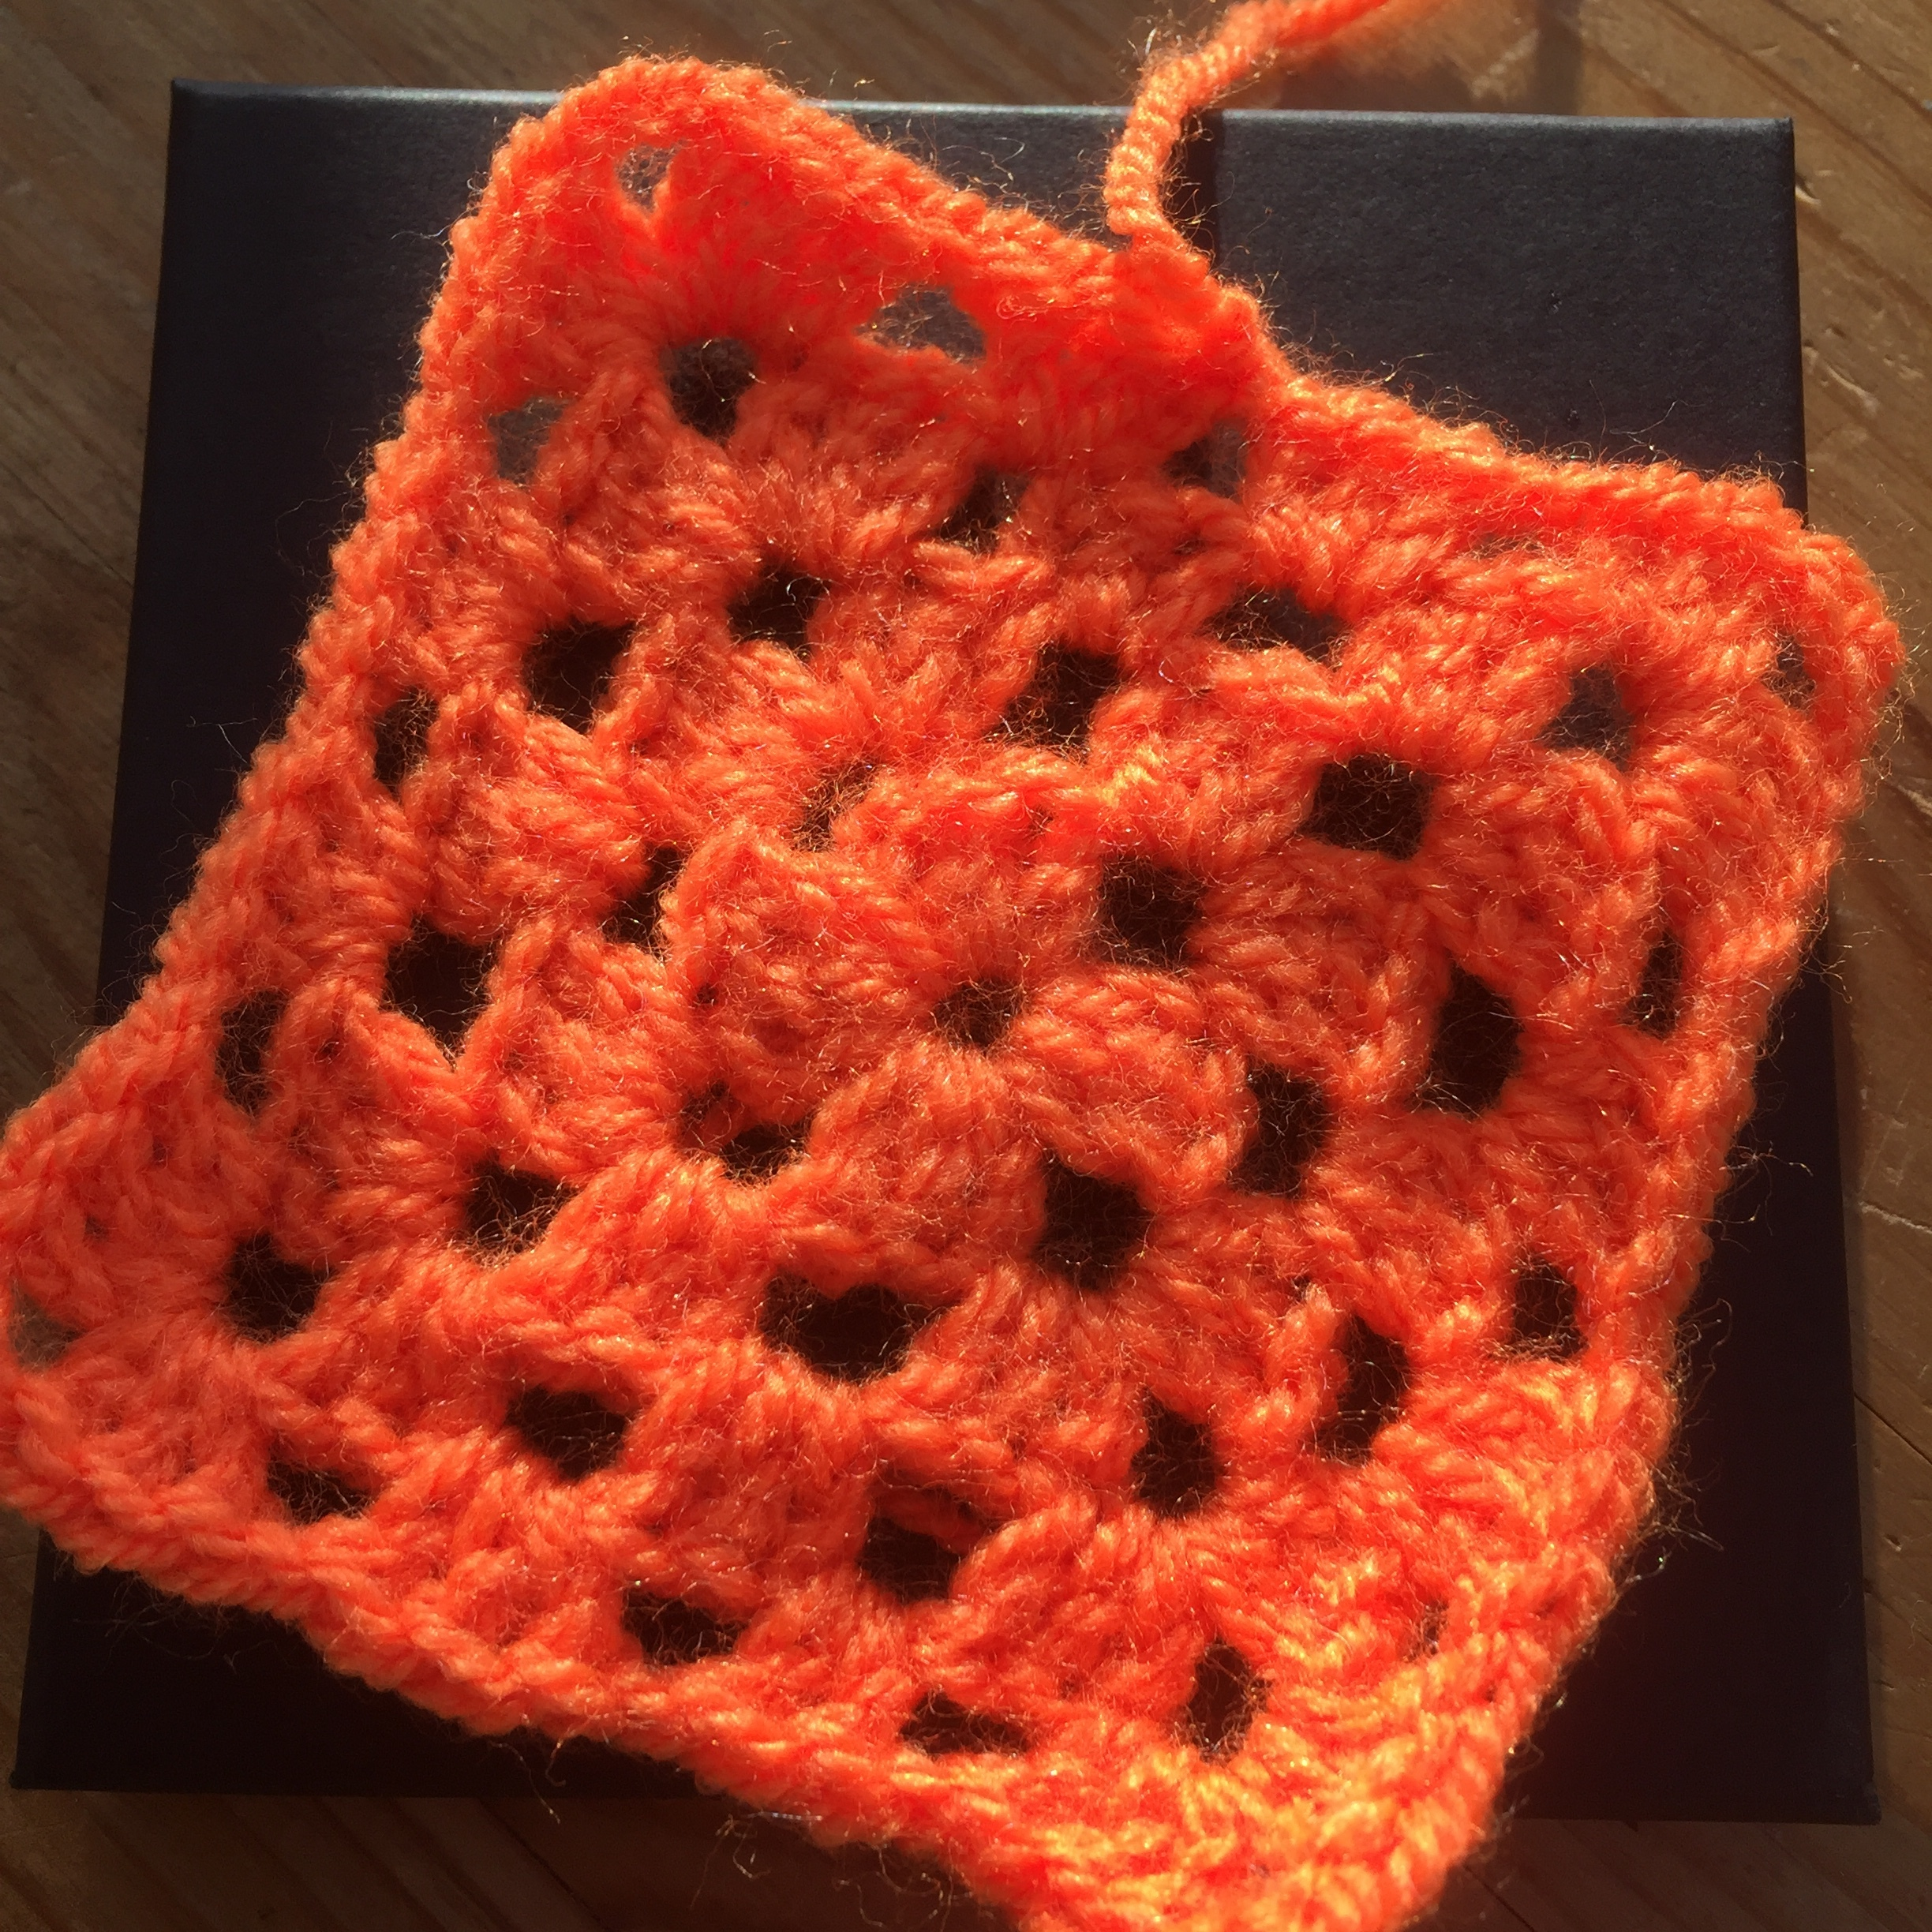 Number 3: My very own crochet granny square!